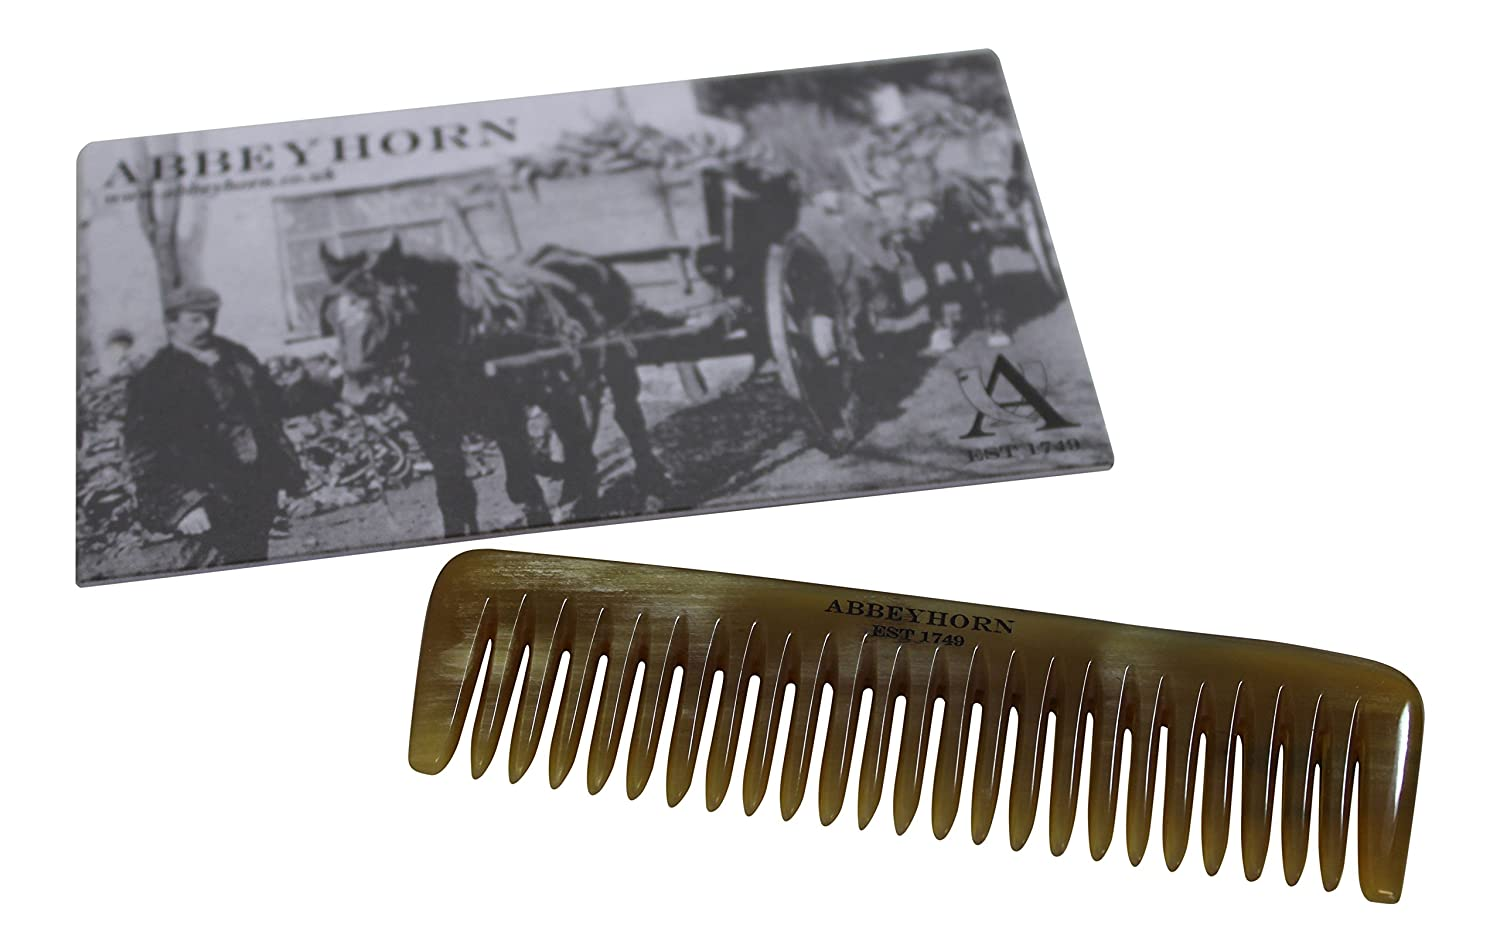 Stunning Small Polished Oxhorn Pocket Comb - Perfect for Hair or Beard Abbeyhorn